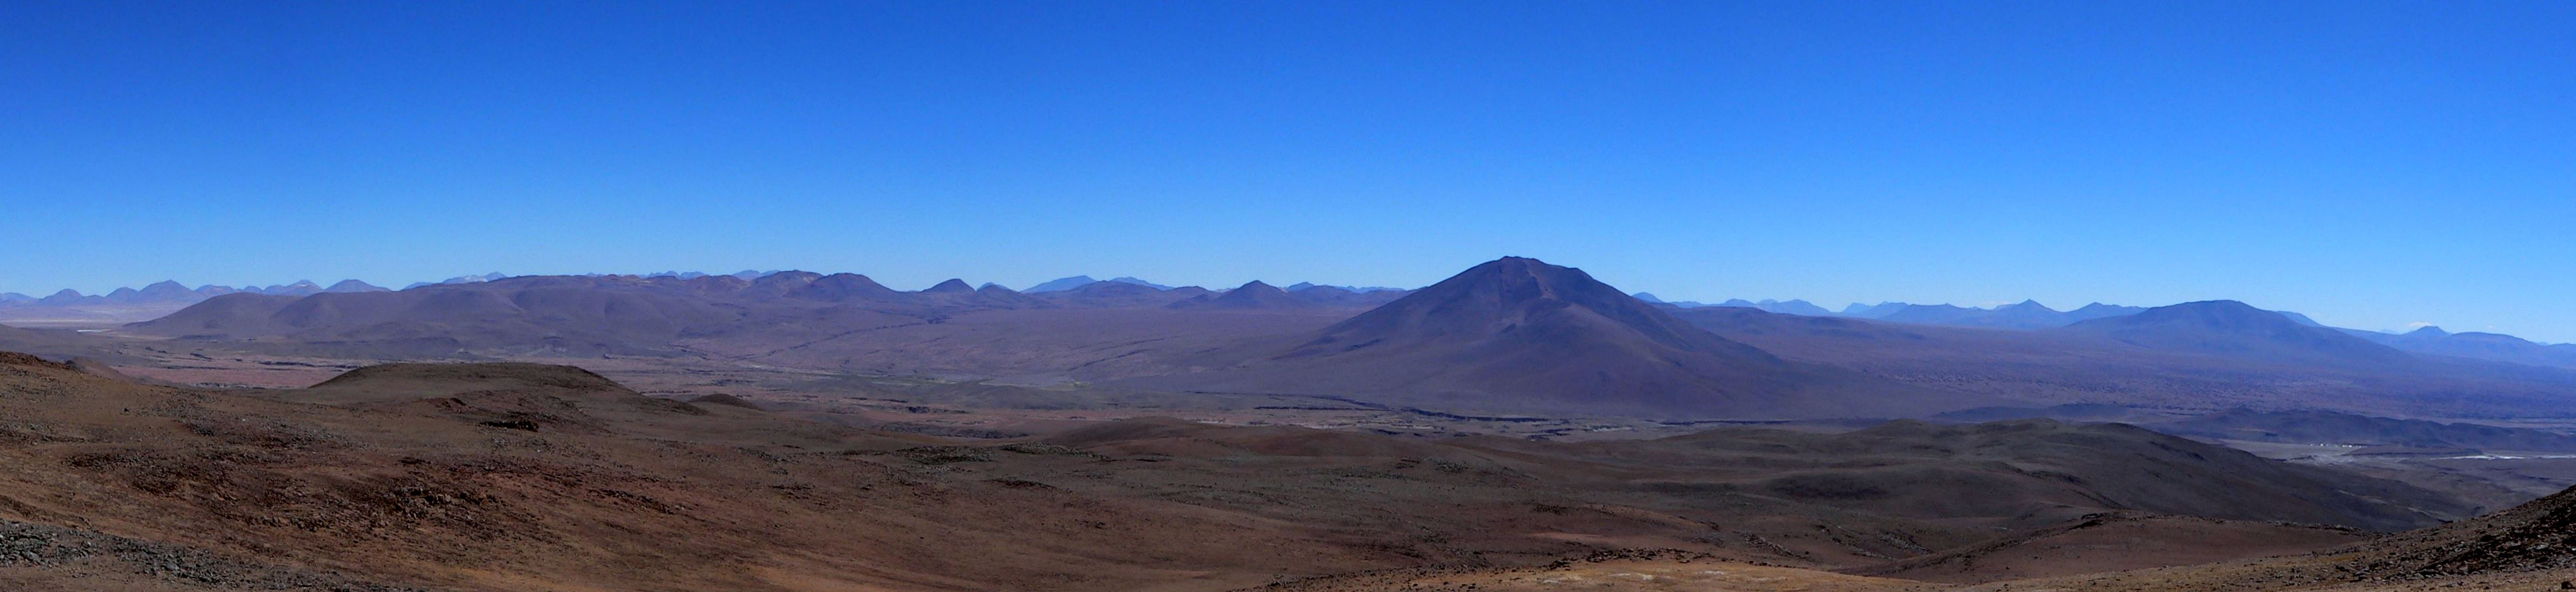 Laguna Colorada Ignimbrite Shield Panorama